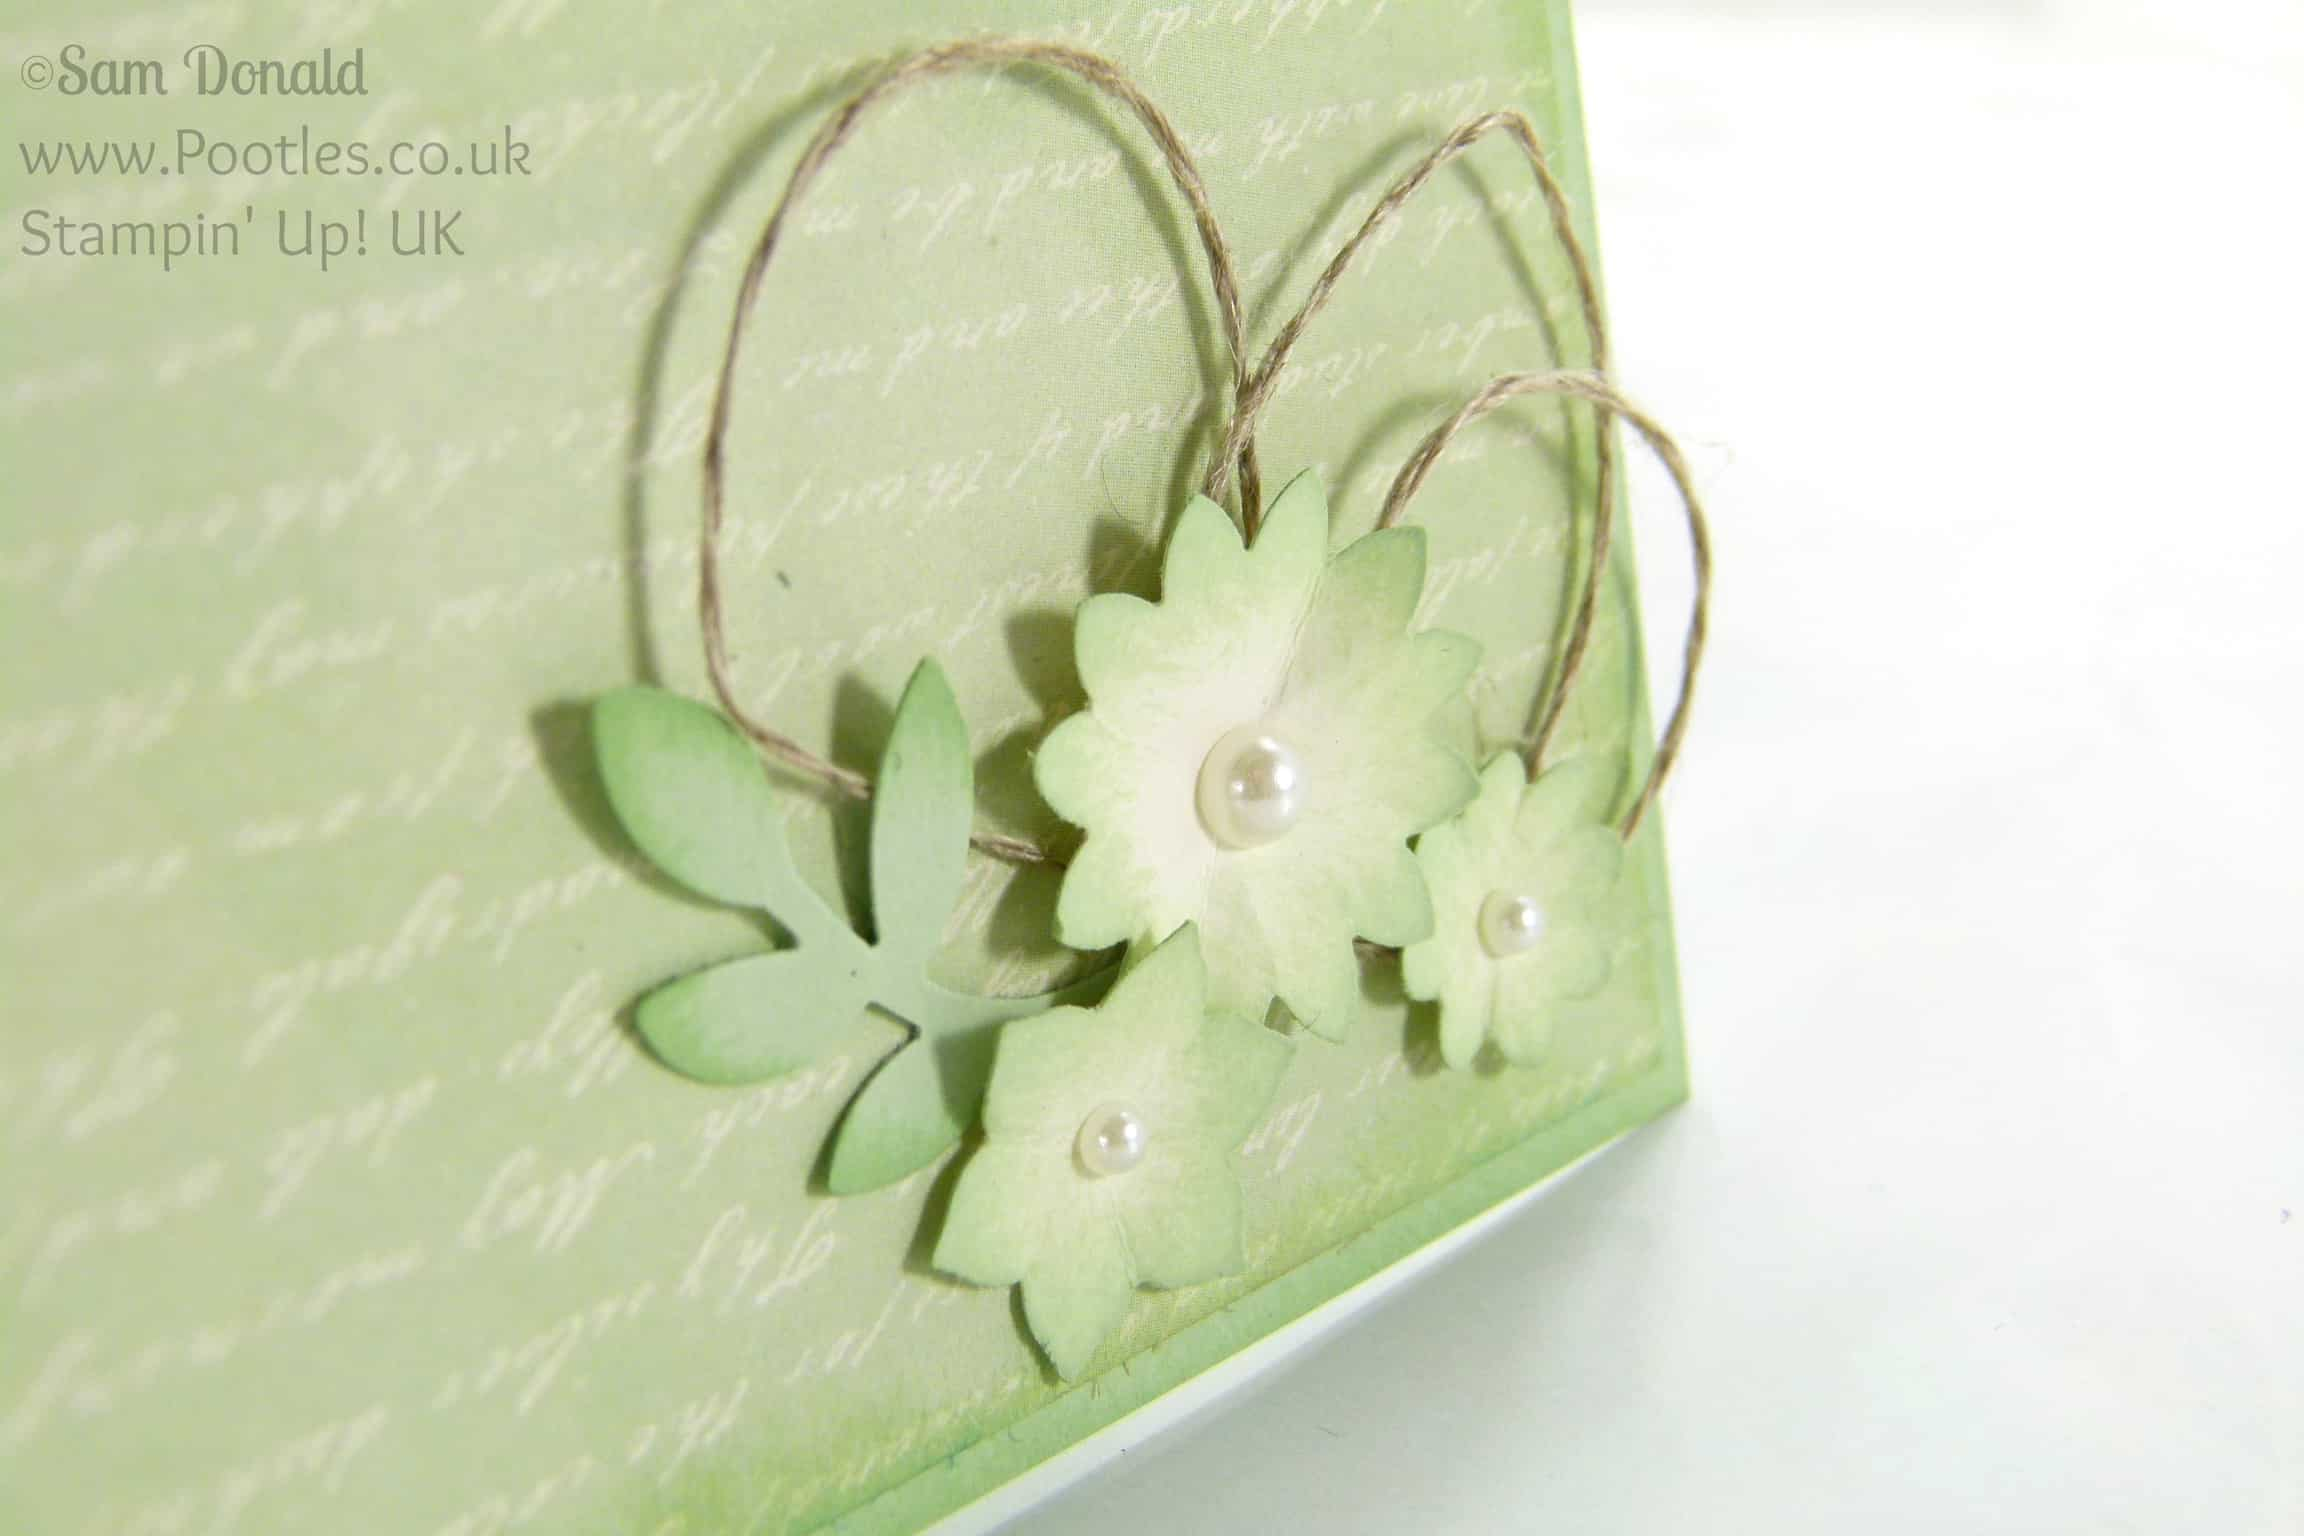 Stampin' Up! UK Independent Demonstrator Pootles. A Very Vintage Venetian Romance. Upside Down... Boho Blossoms Detail